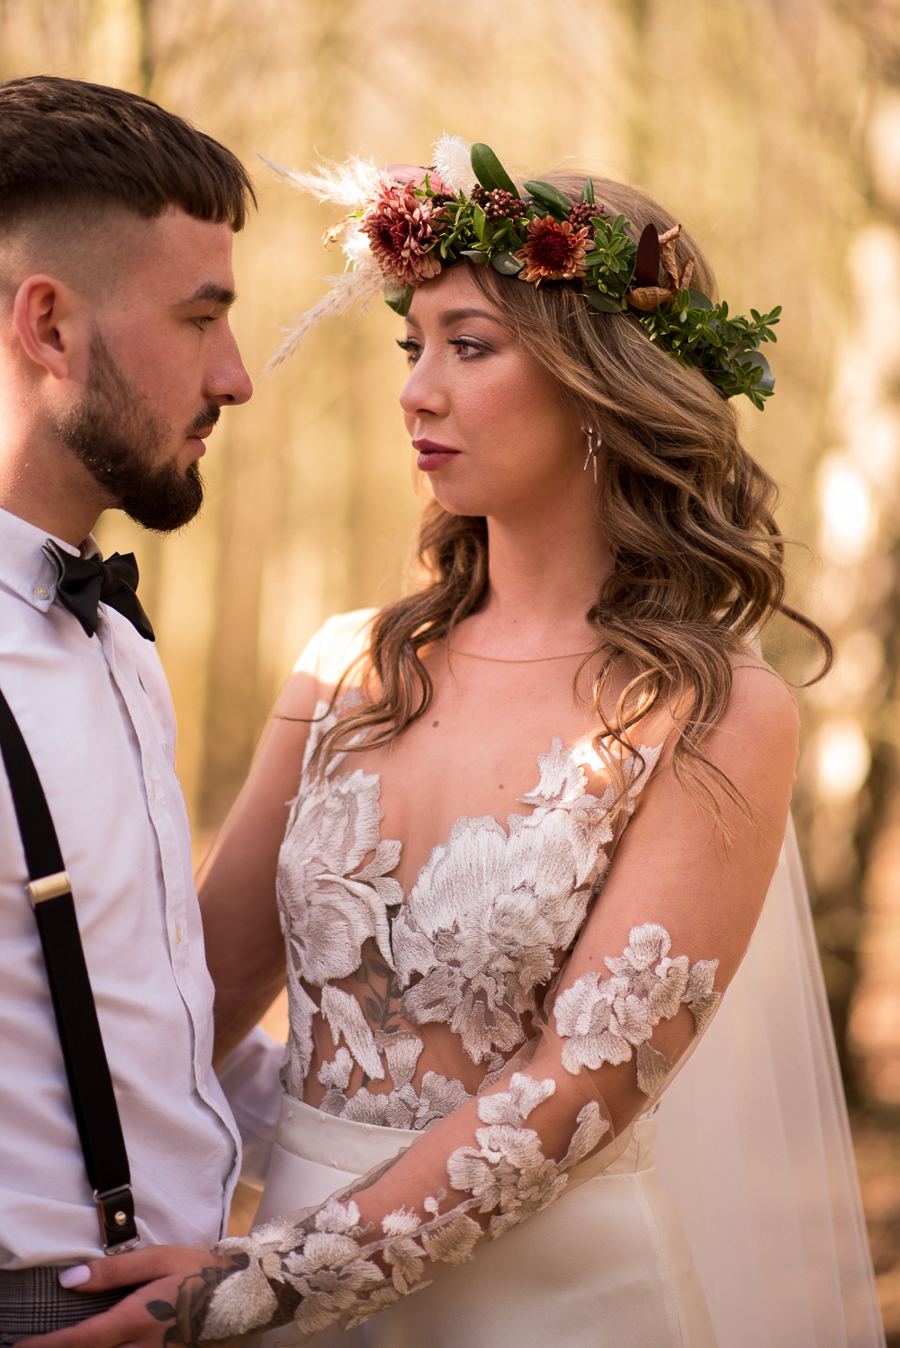 See you at Sunset - a warm autumnal wedding photoshoot with Nicola Belson Photography (18)